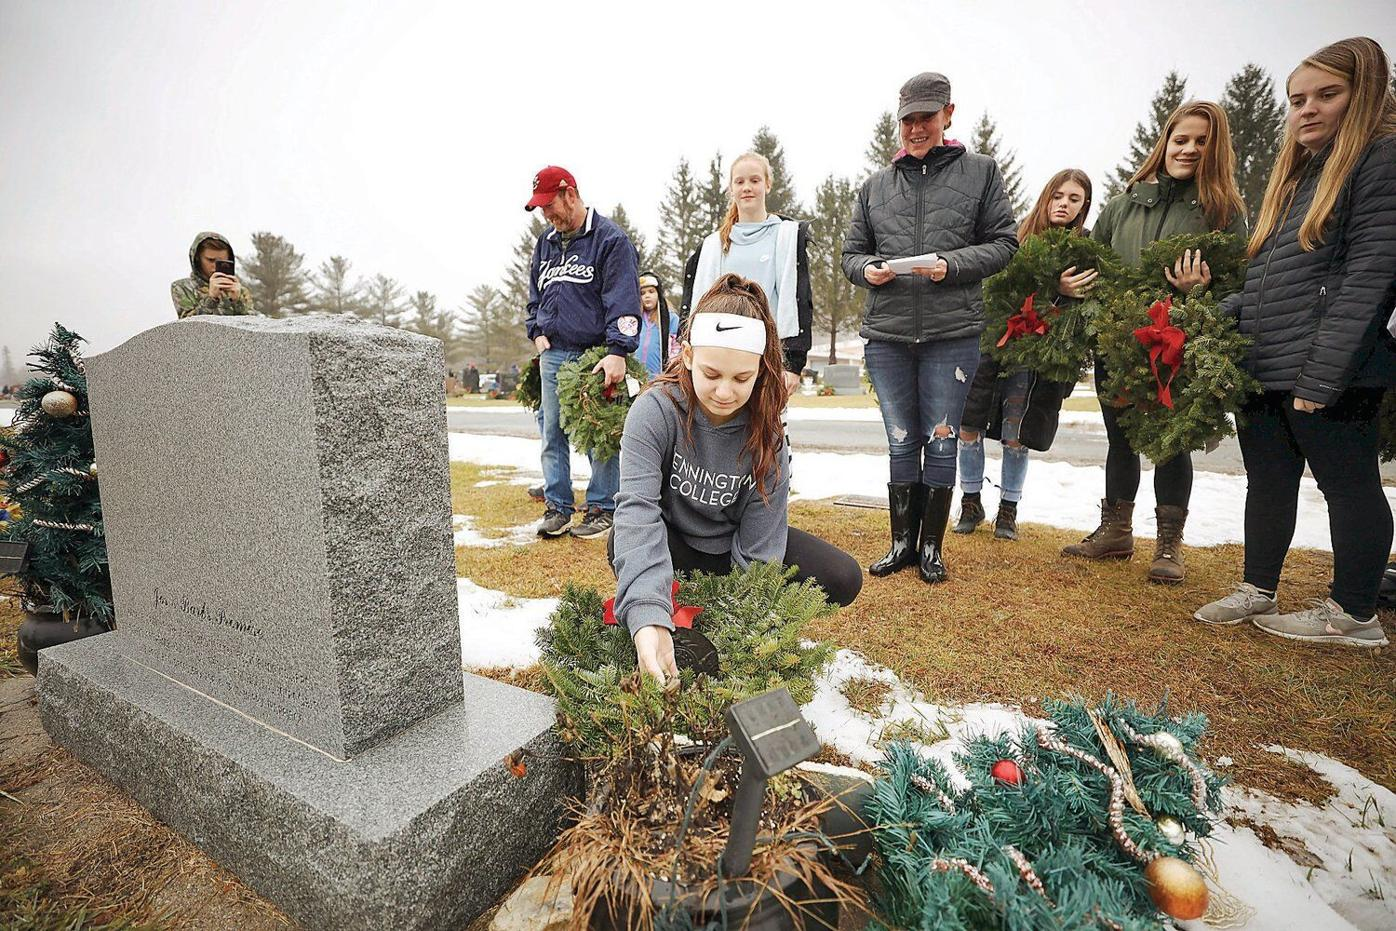 In North Adams, honoring veterans one wreath at a time